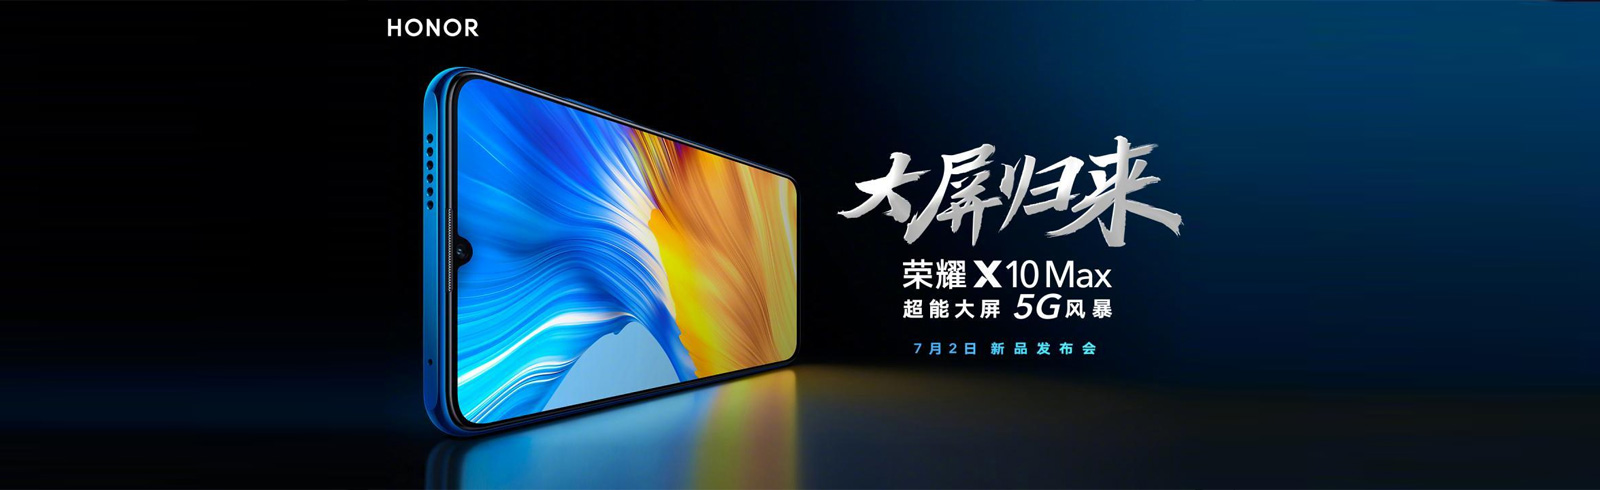 The Huawei Honor X10 Max will have a 7.09-inch RGBW display panel